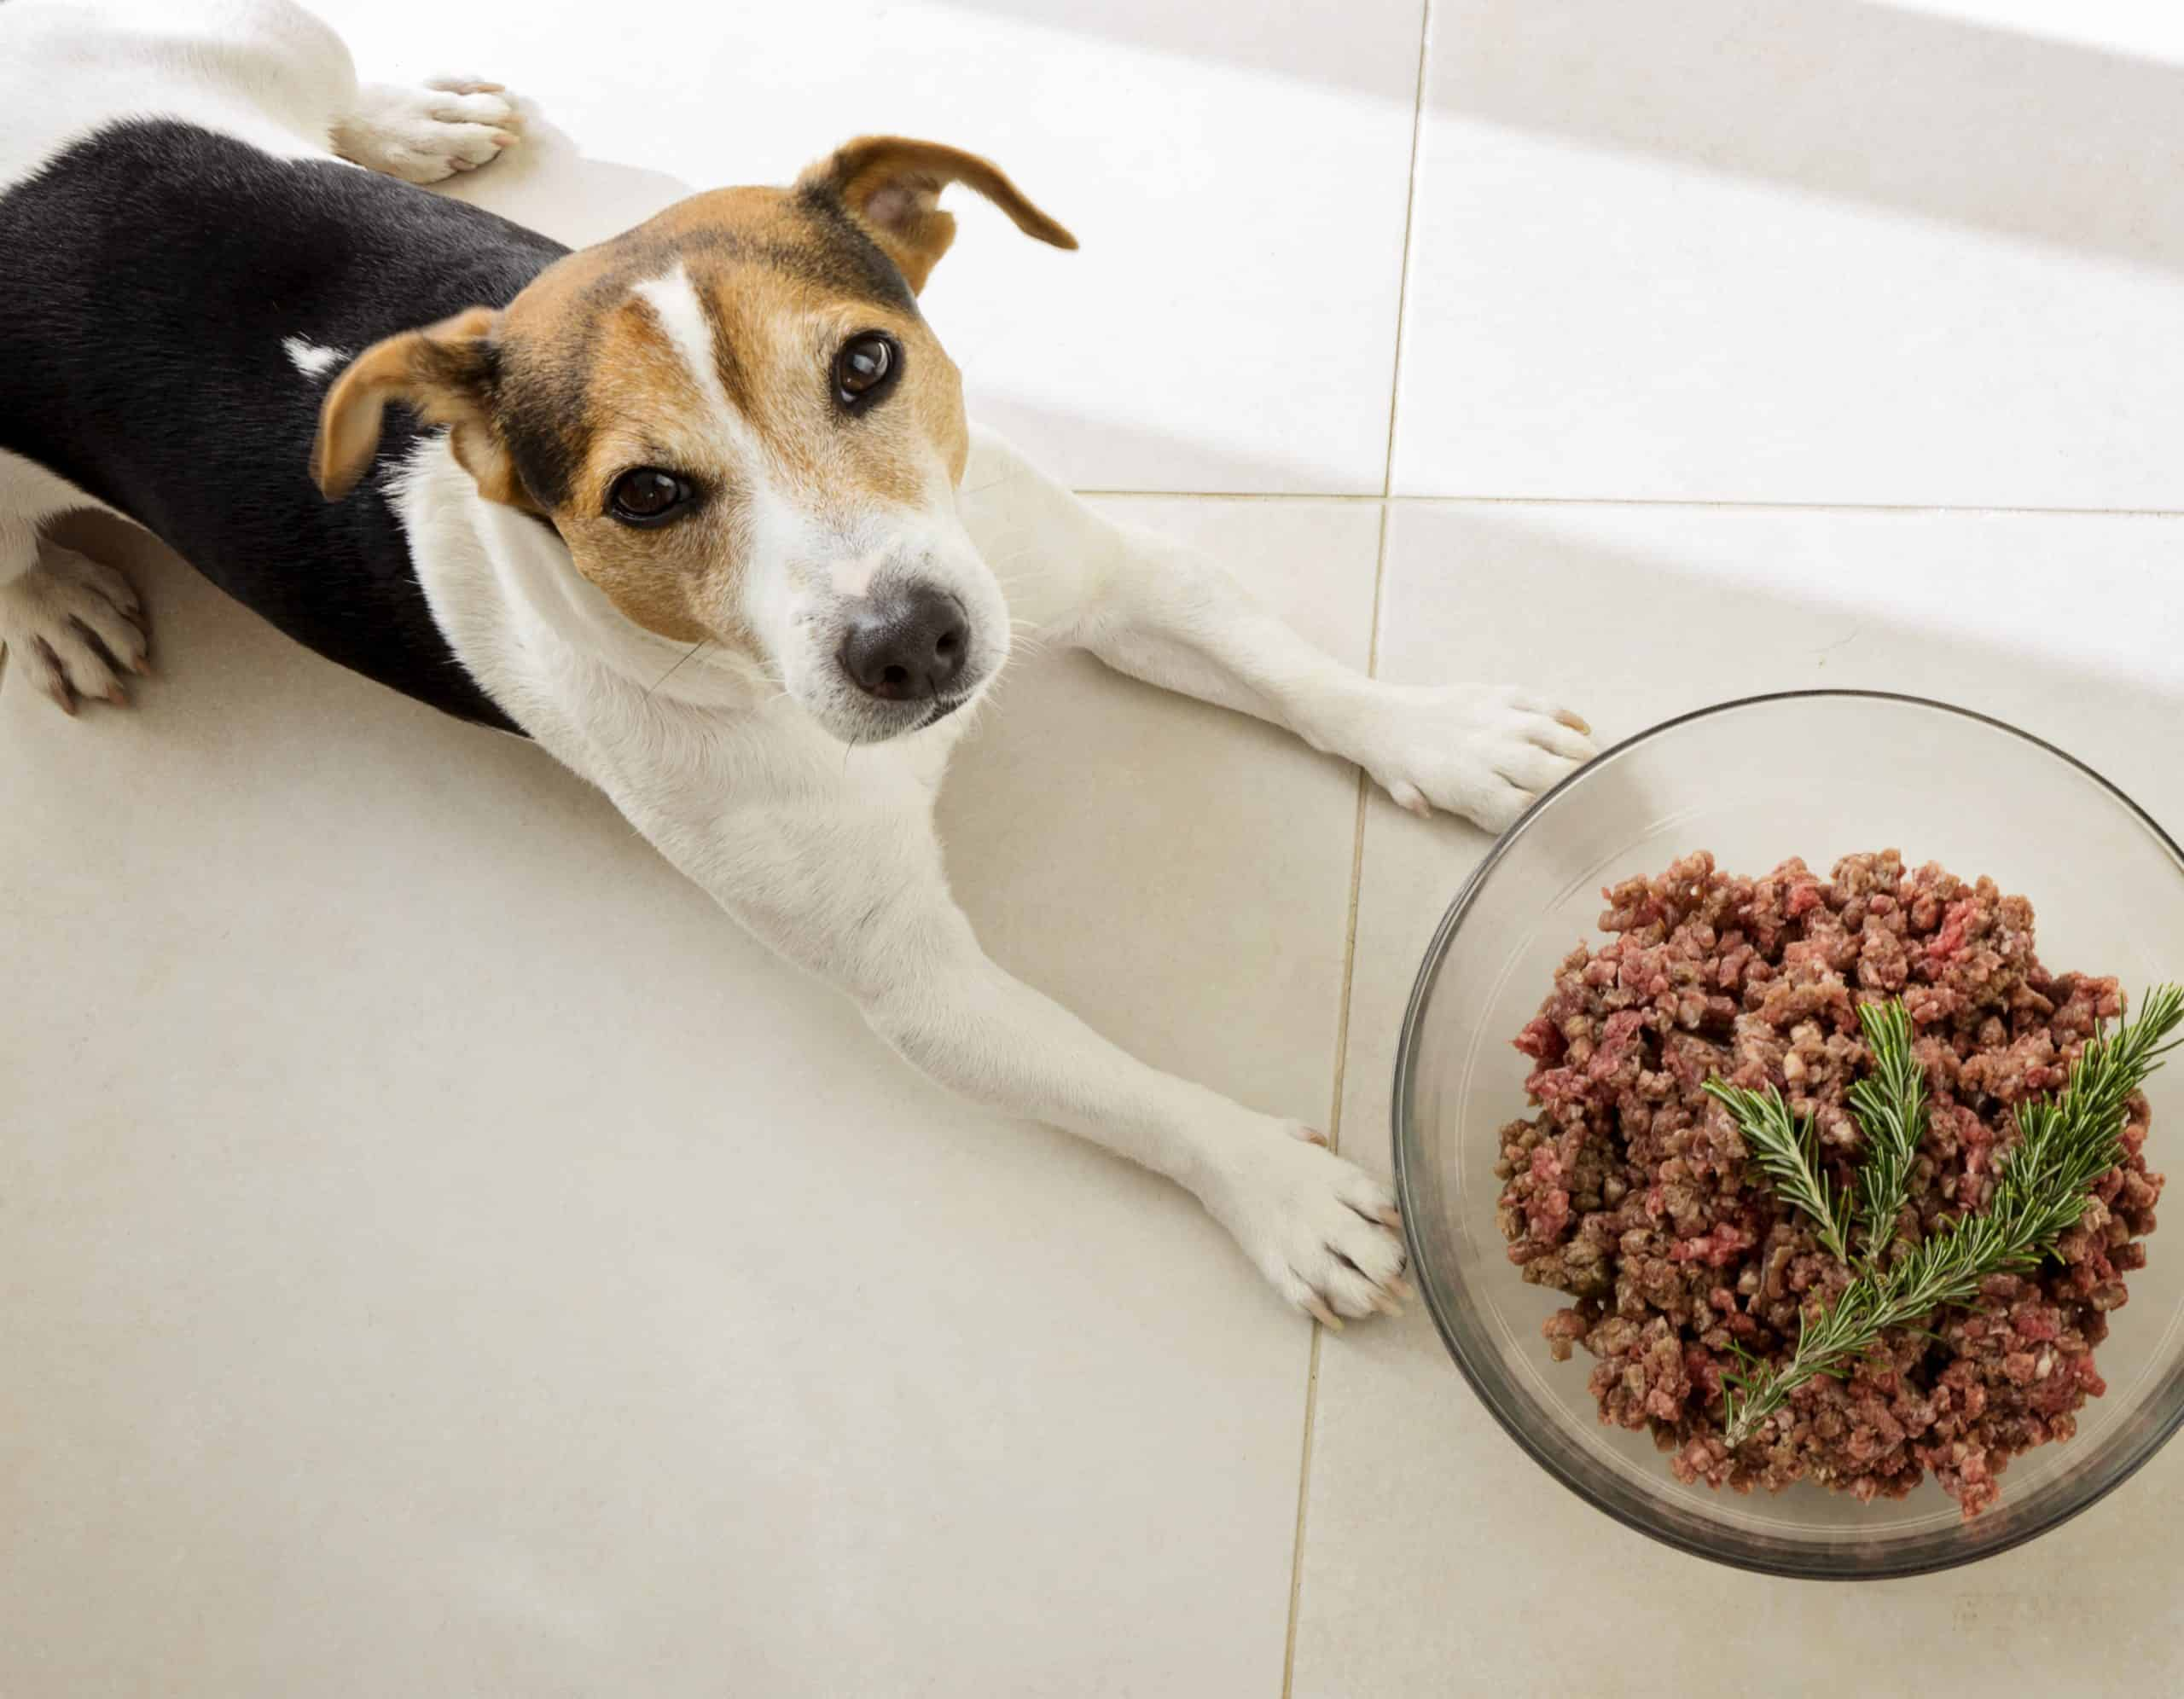 Dog sits next to food bowl with thyme resting on top of food. Thyme helps improve digestion, supports gastrointestinal health, and can expel parasites like hookworms. It also is good for your dog's skin and can help improve brain function. Just add a teaspoon of either the dried or fresh herb per pound fed to your dog's food.